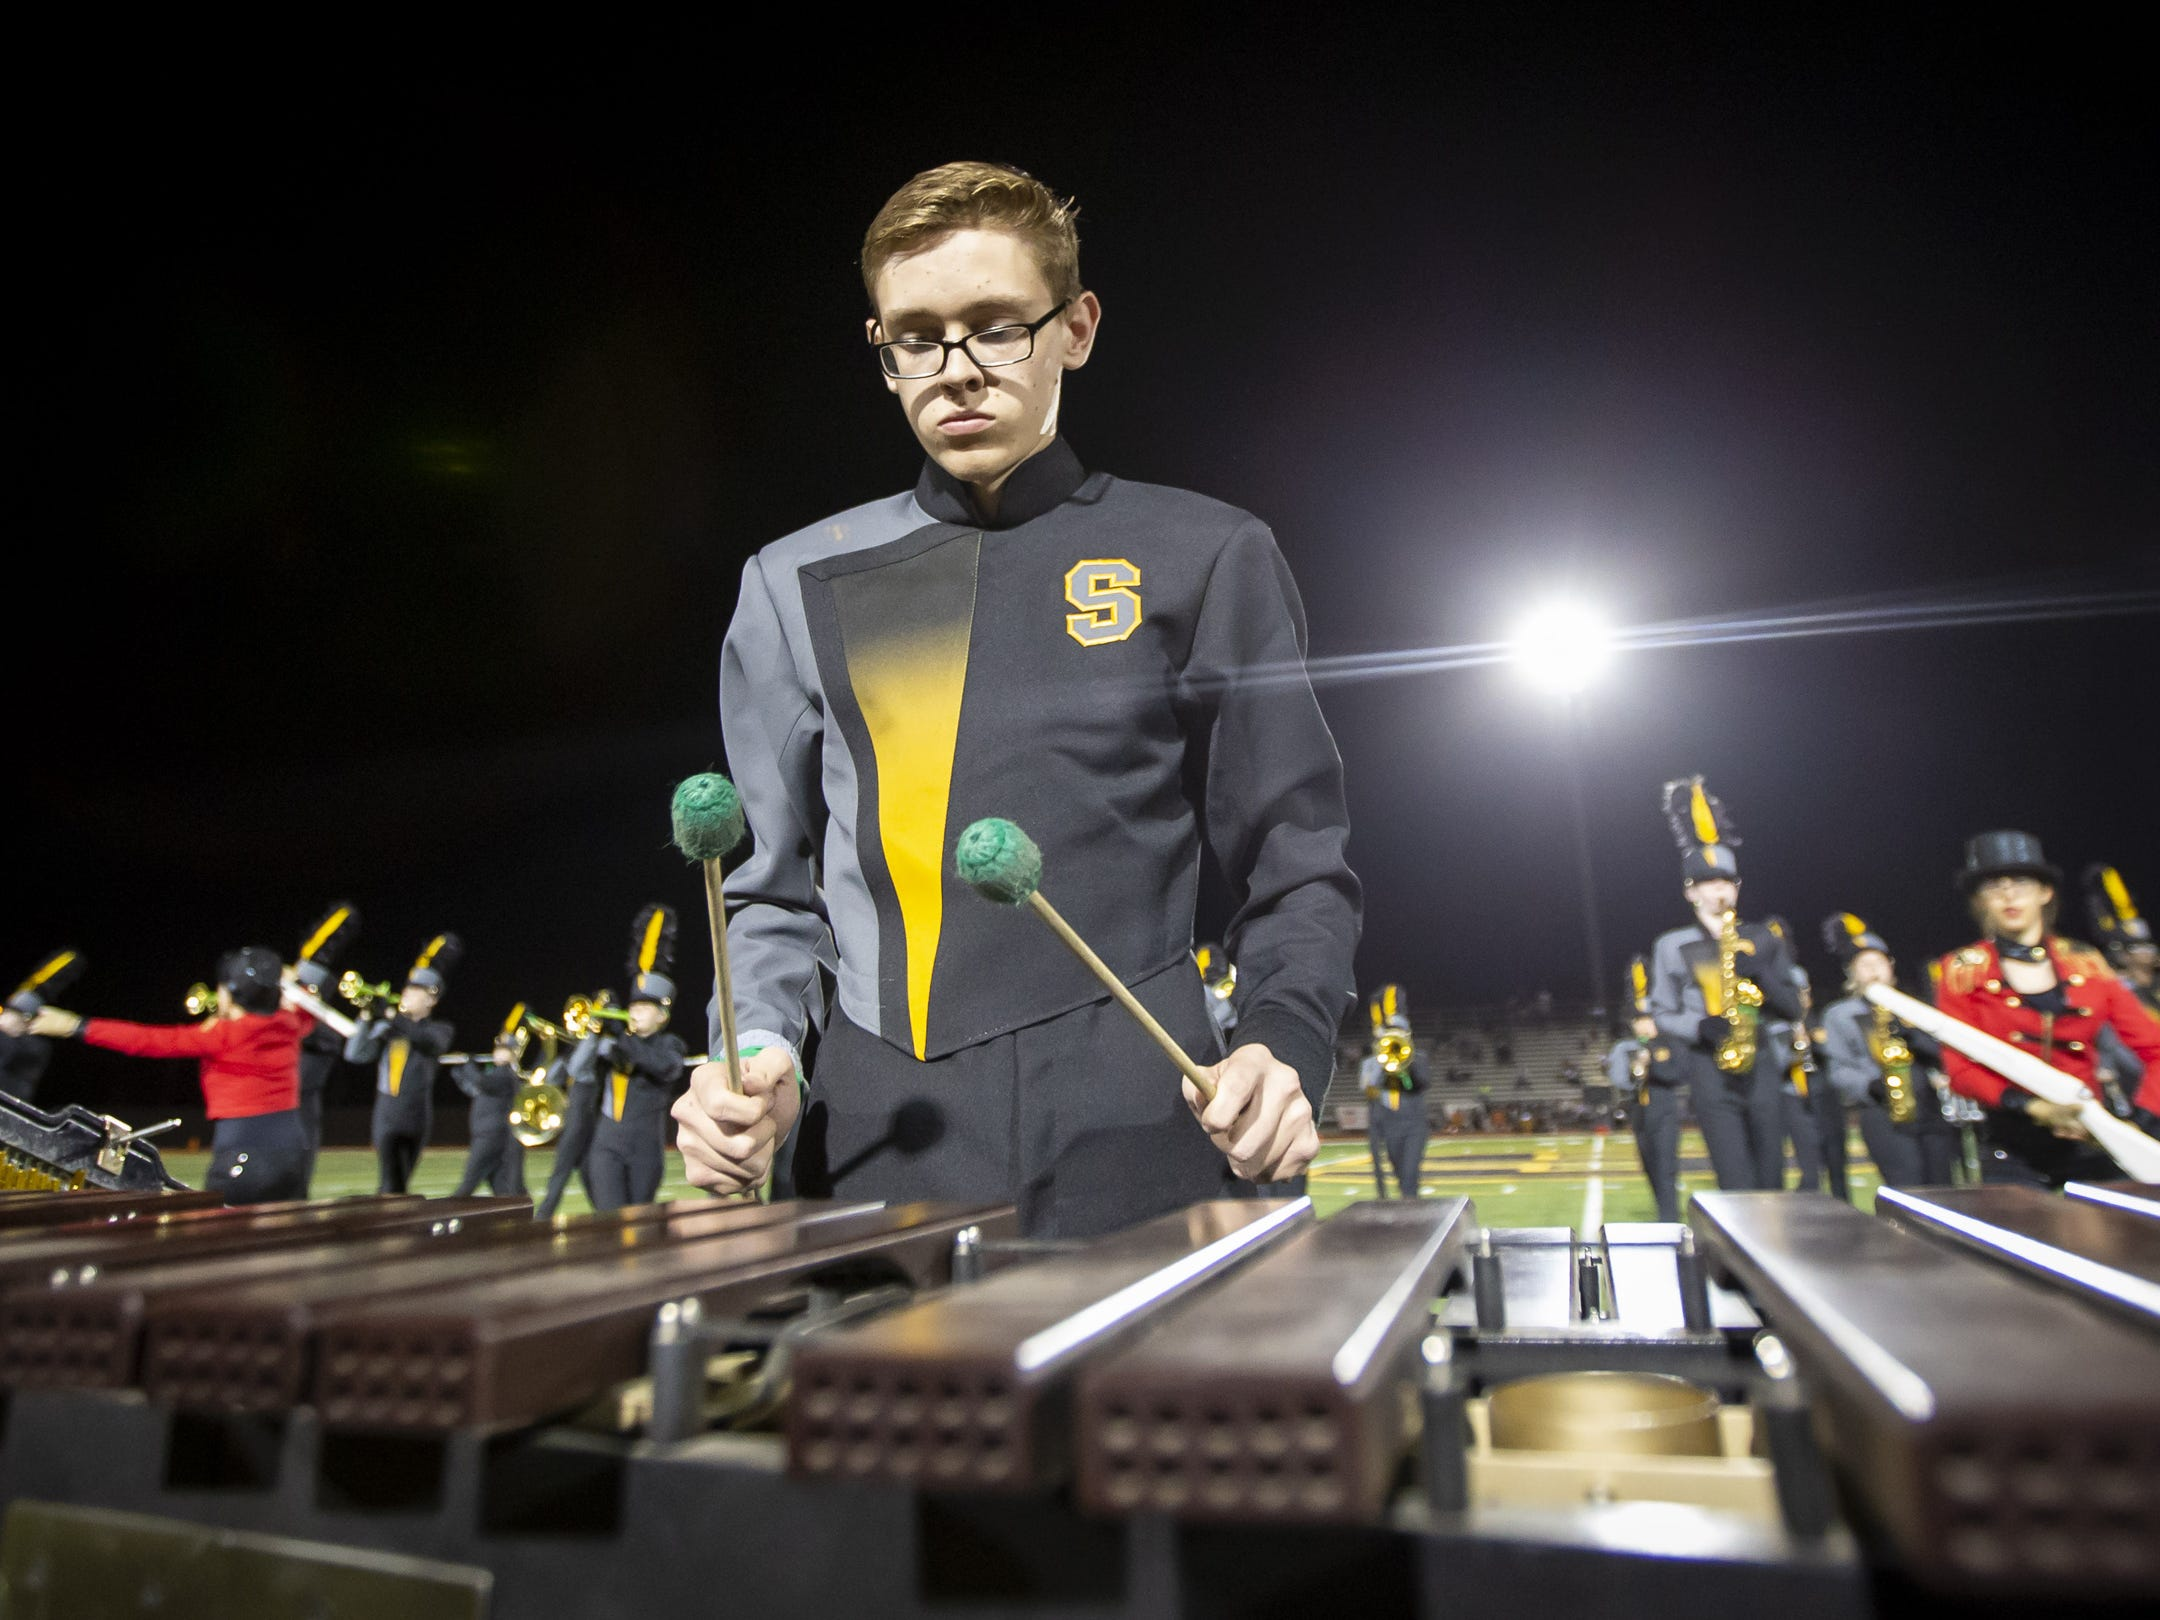 The Saguaro Marching Band performs at halftime during the game against the Desert Edge Scorpions at Saguaro High School on Friday, September 28, 2018 in Scottsdale, Arizona. #azhsfb